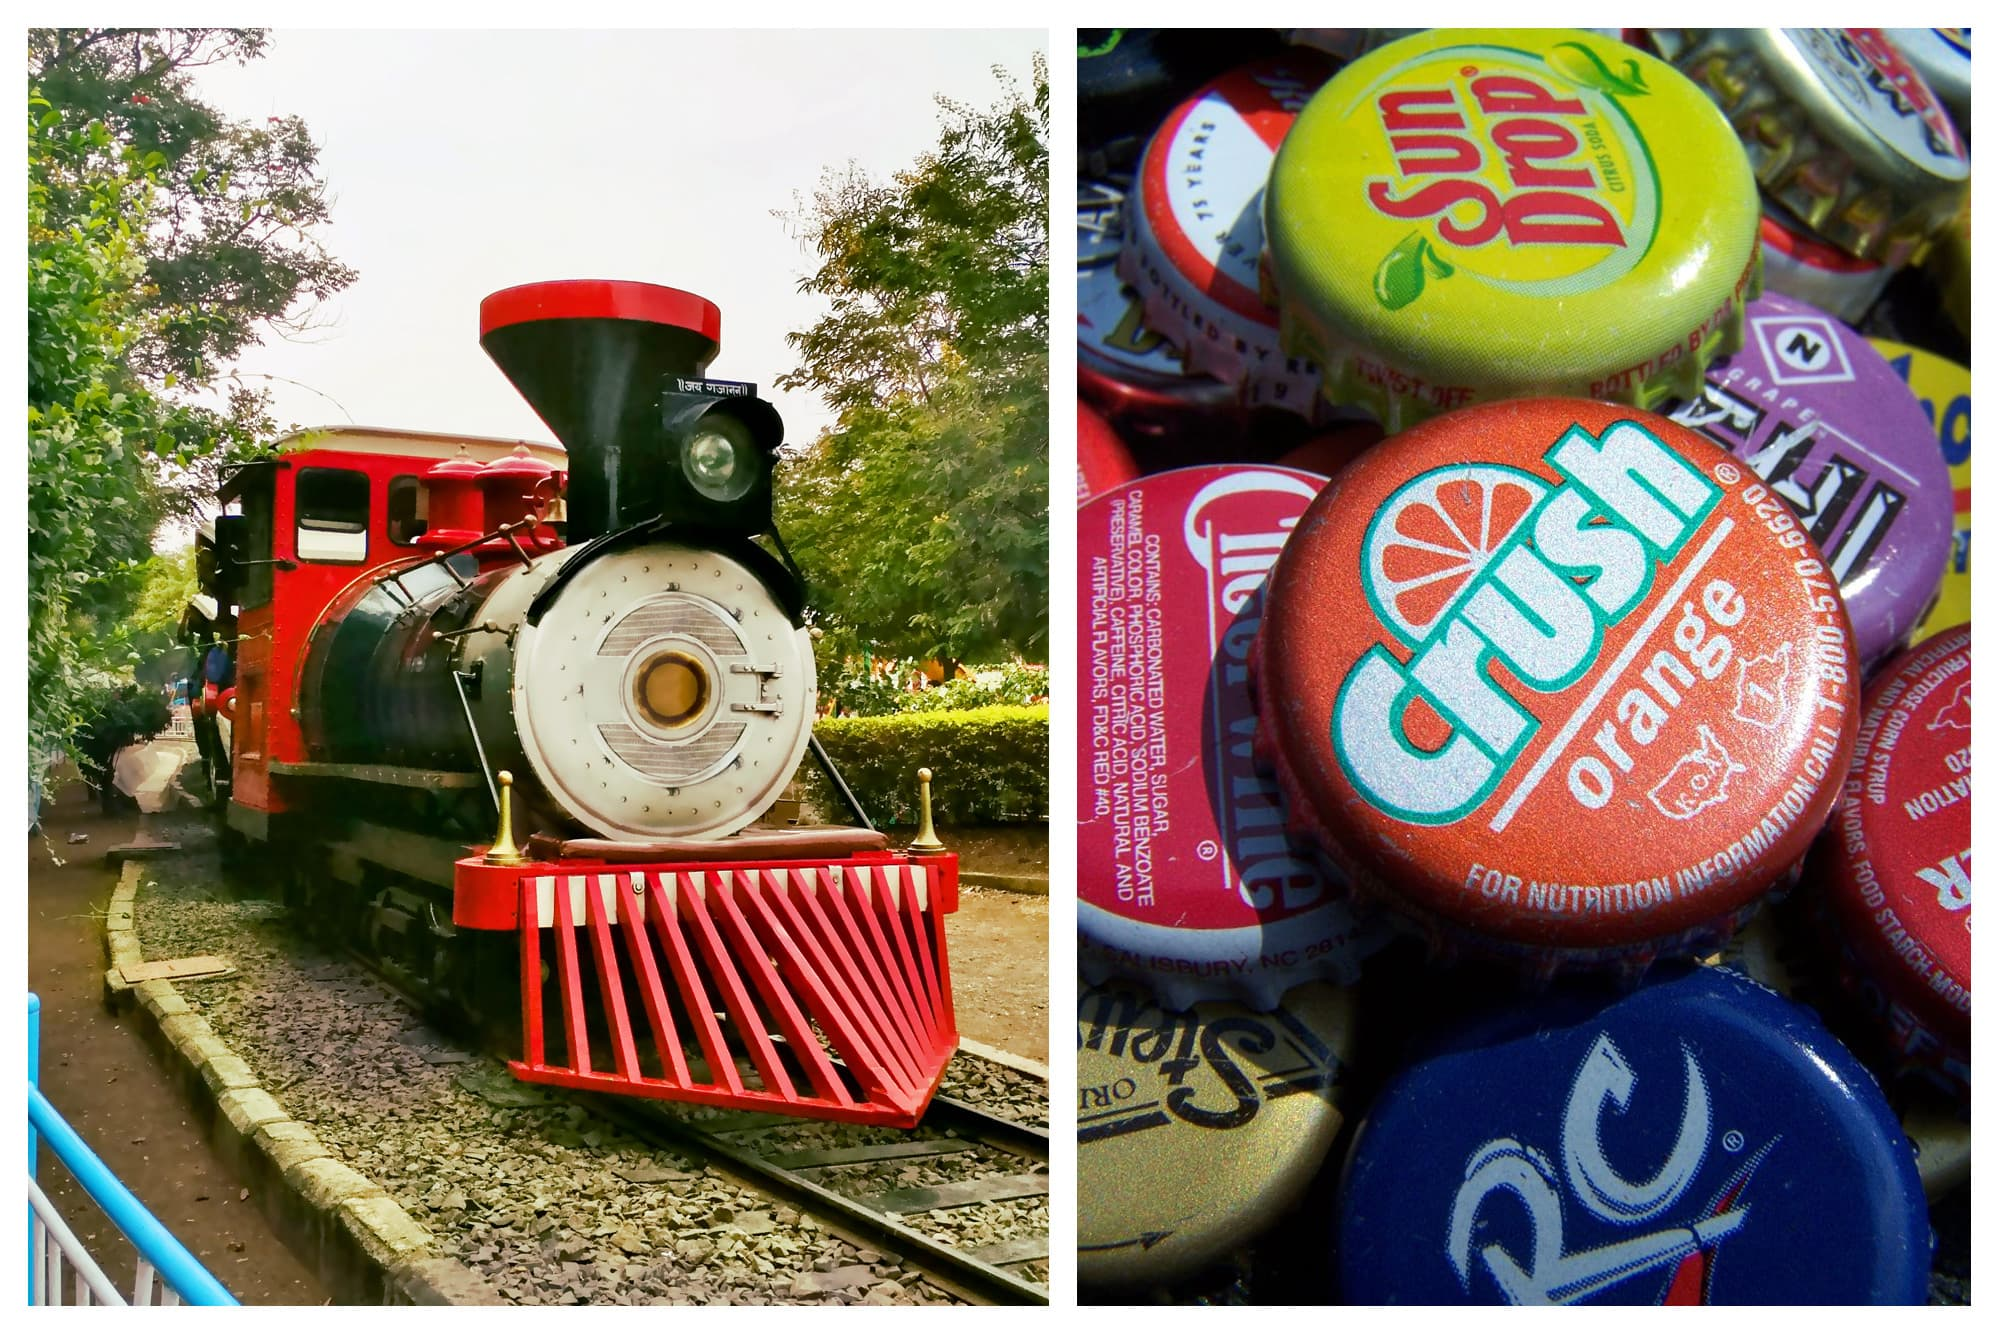 Old-fashioned train and old-fashioned soda bottle caps